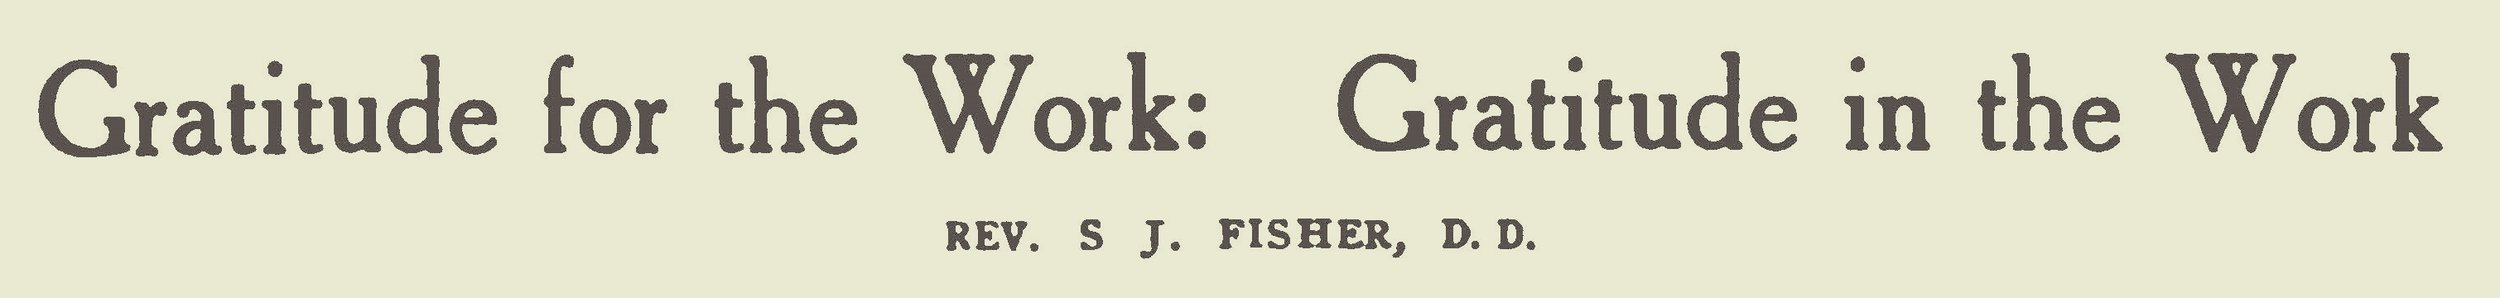 Fisher, Samuel Jackson, Gratitude for the Work Gratitude in the Work Title Page.jpg